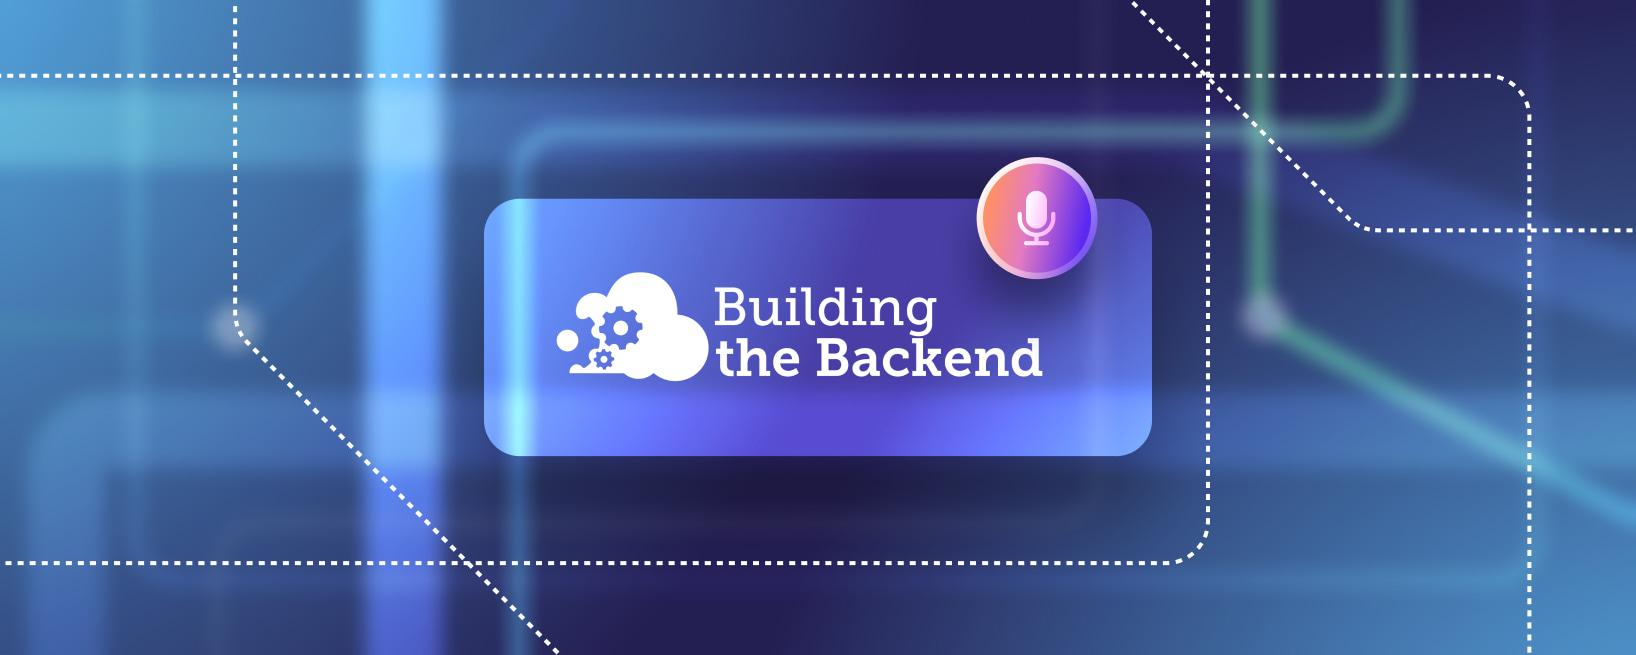 Building the Backend – Applying Transformations to Streaming Data Applications in SQL image